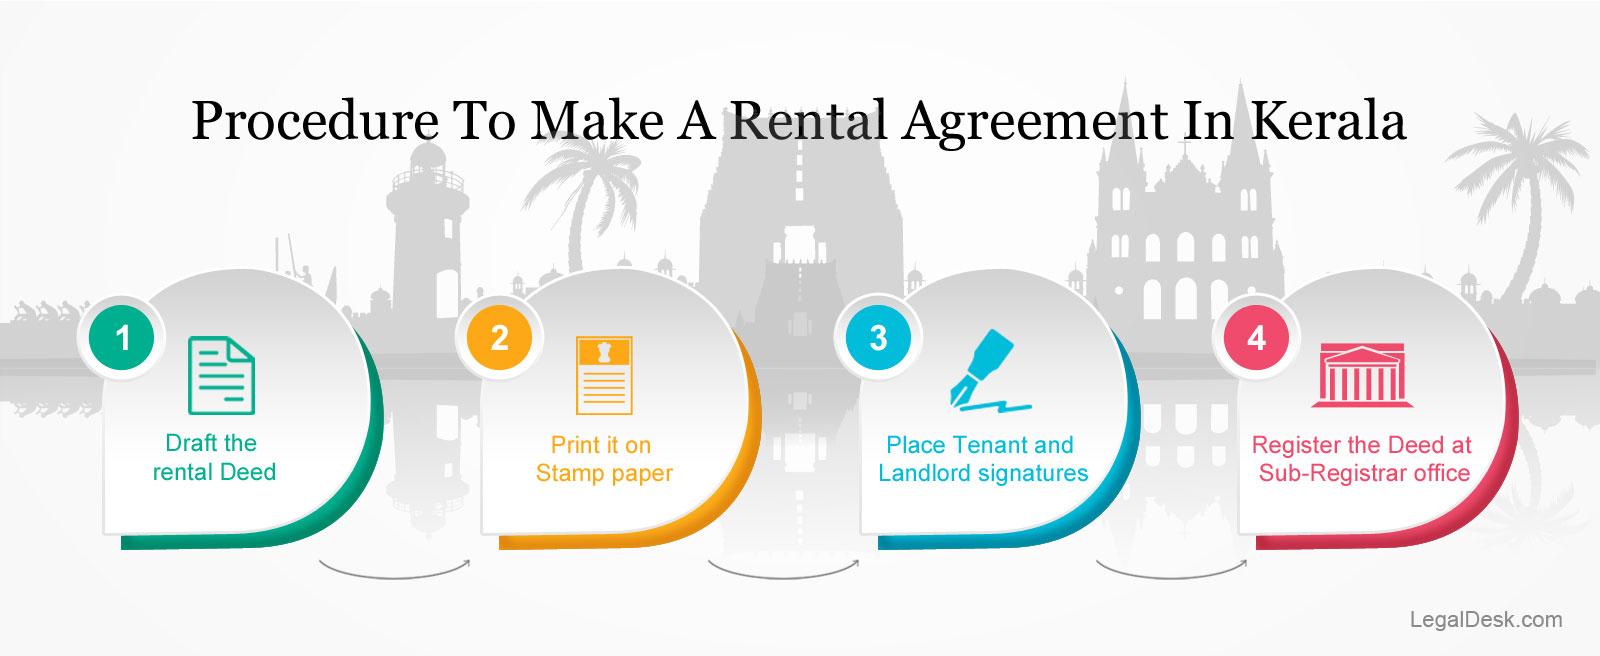 Procedure For Rental Agreement In Kerala